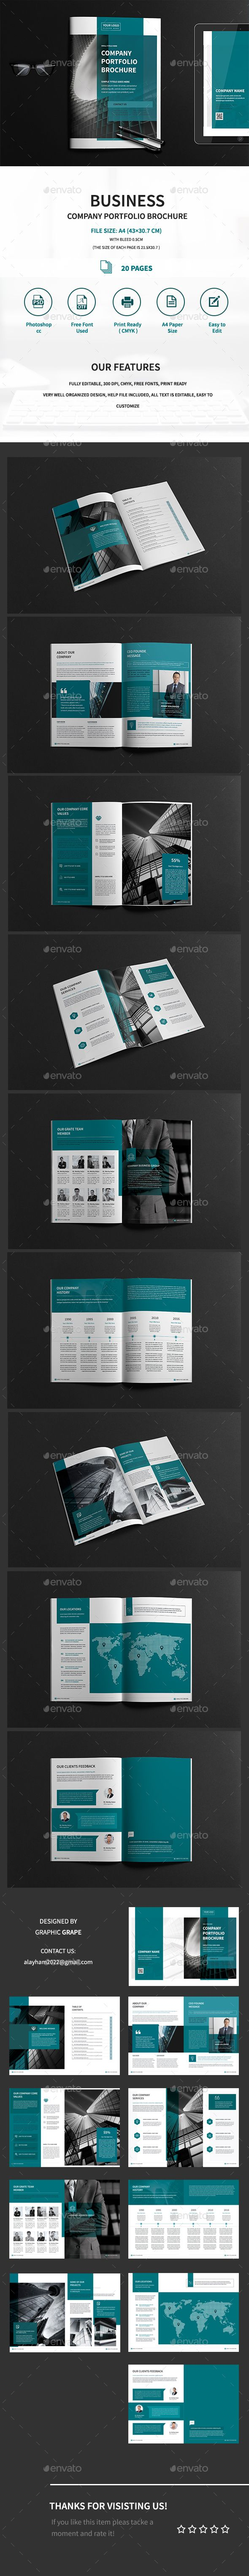 A4 Business Company Portfolio Brochure Template PSD. Download here: http://graphicriver.net/item/a4-business-company-portfolio-brochure-/15627841?ref=ksioks